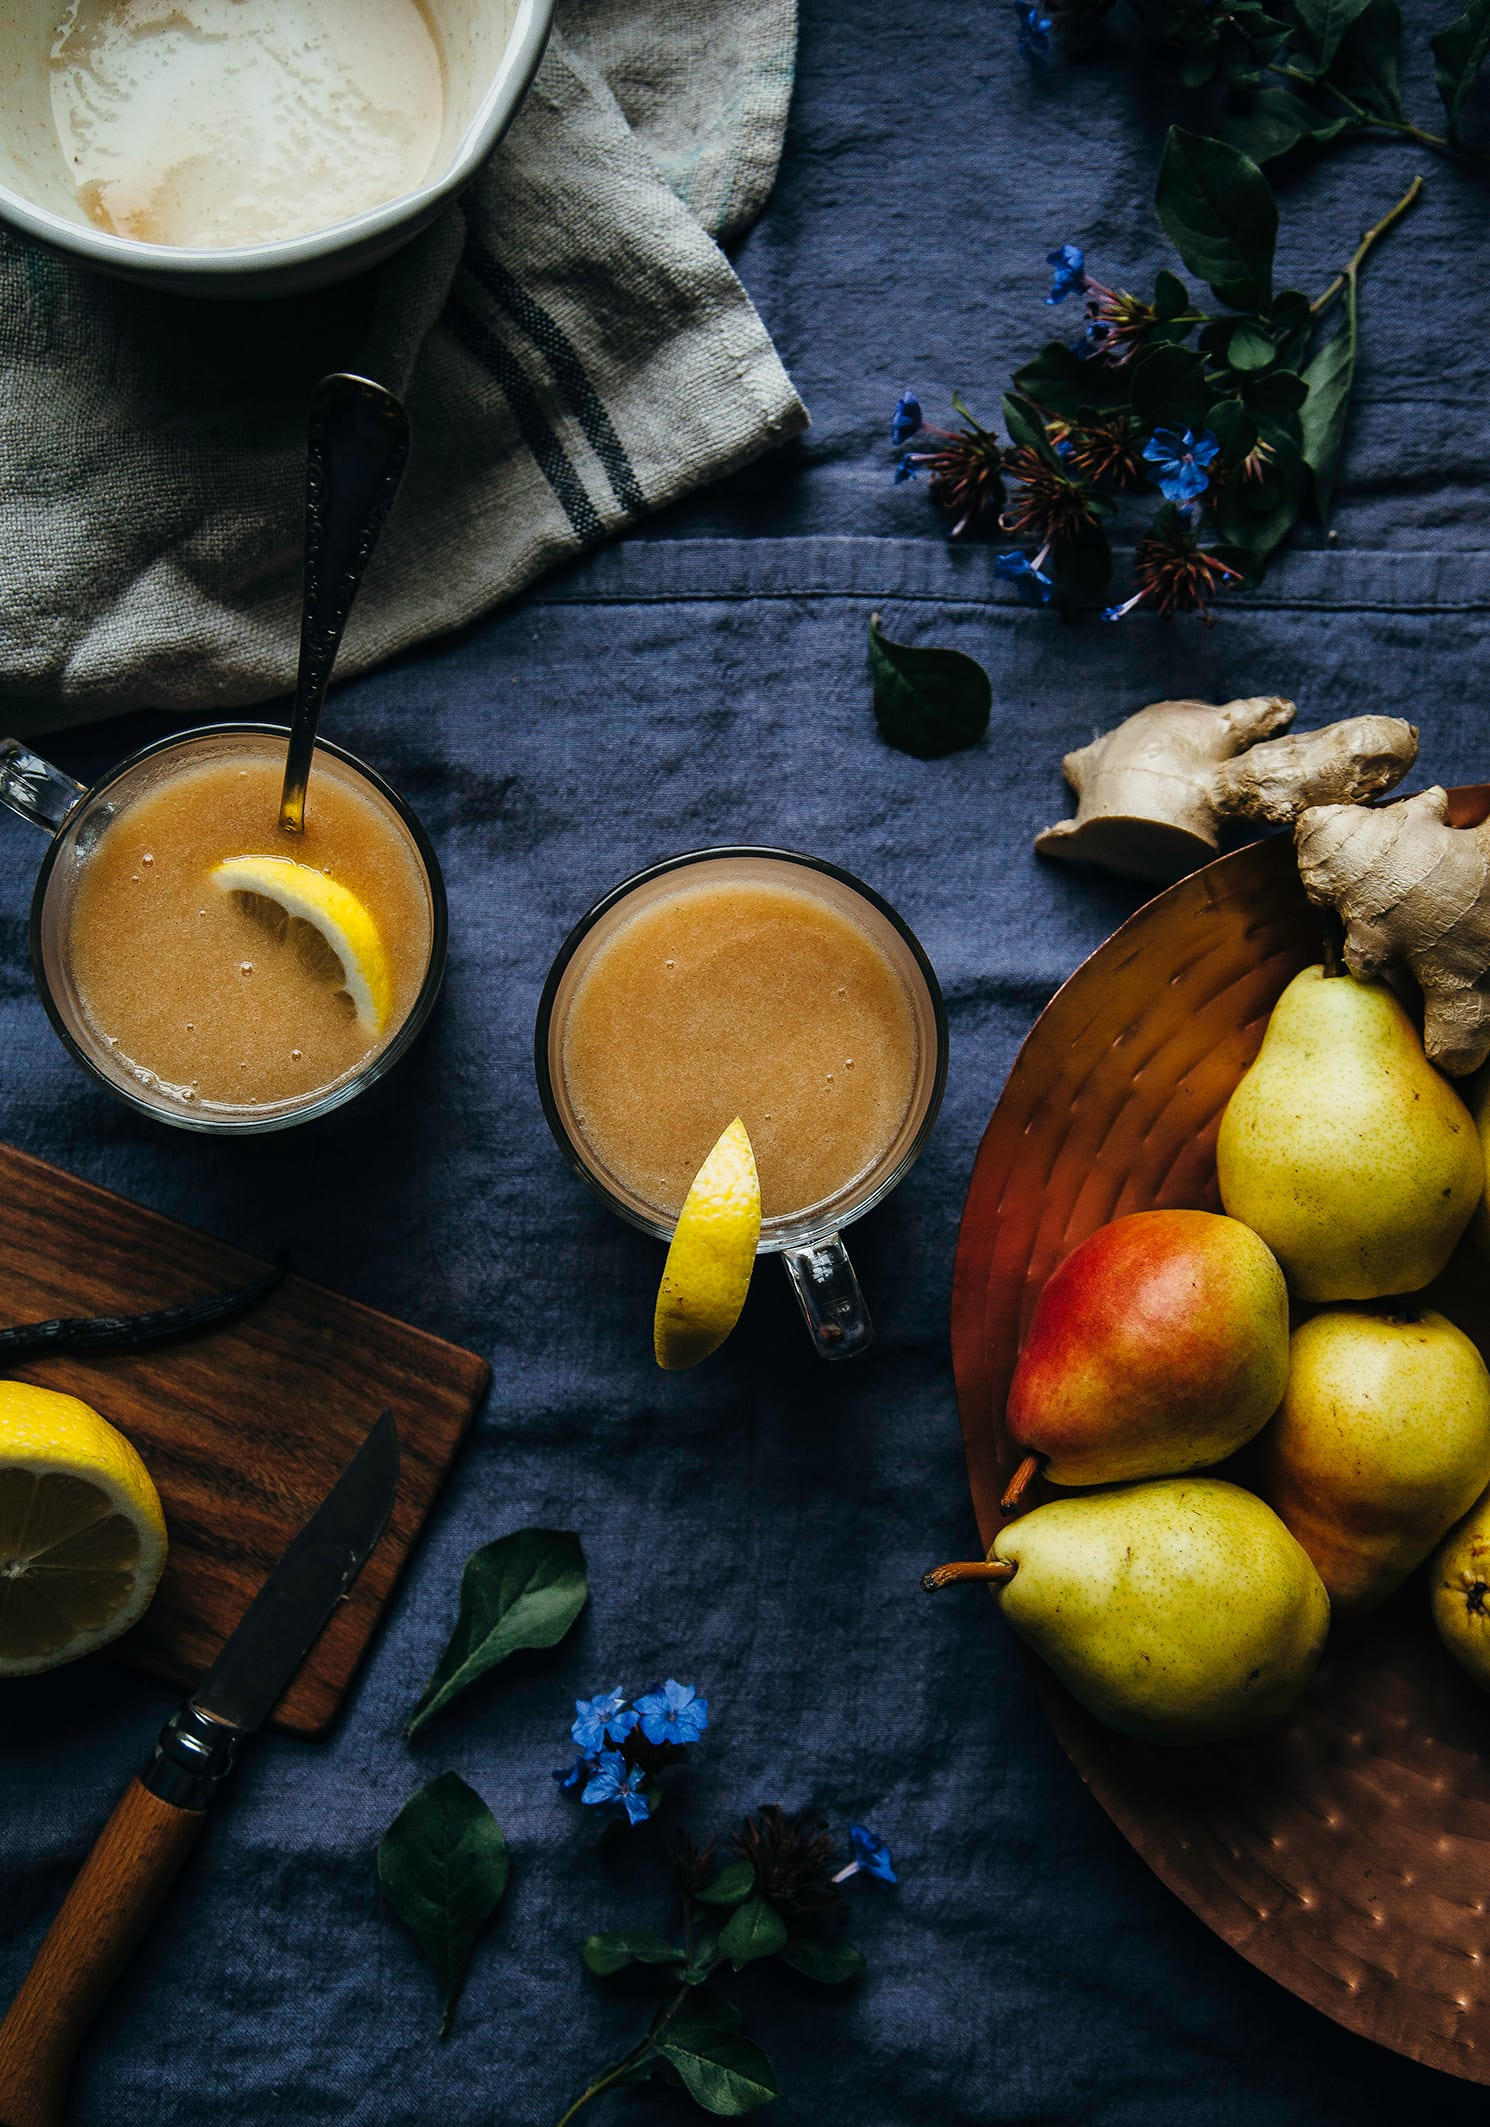 An overhead shot of warm cider in 2 clear mugs. Pears, ginger root, and a halved lemon are seen to the side.